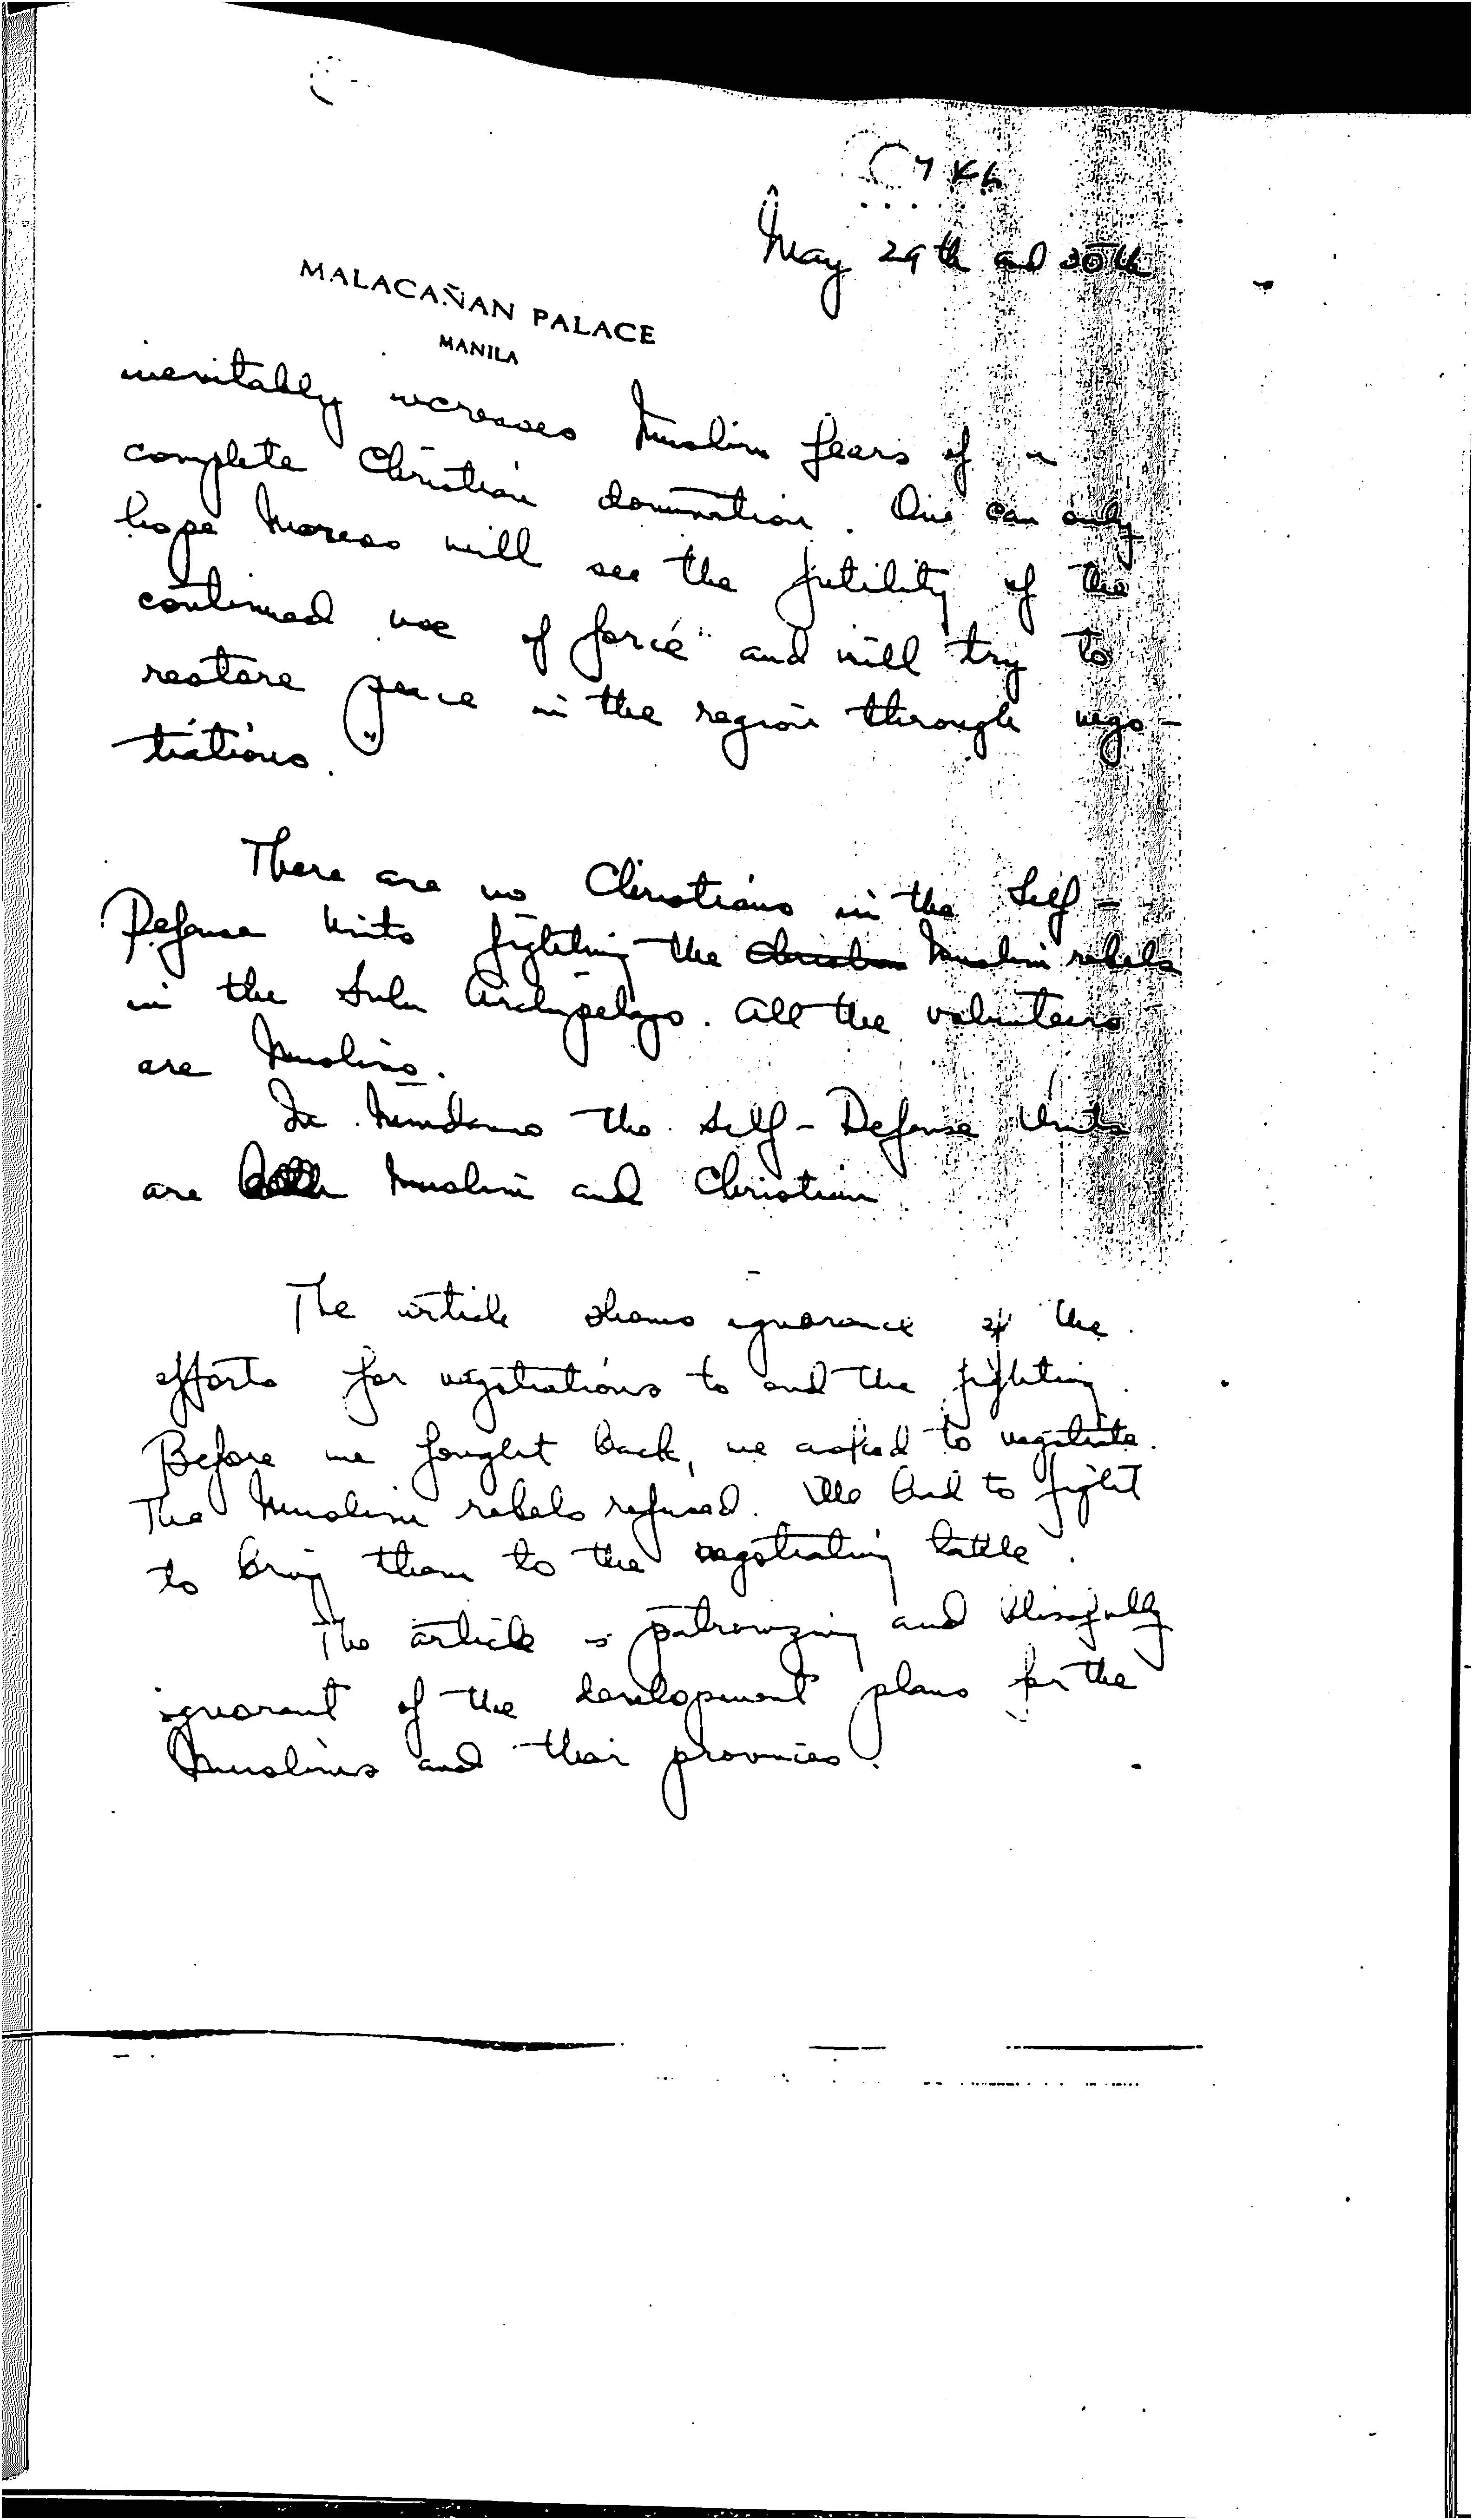 1973 Marcos Diary Black Book_Page_092